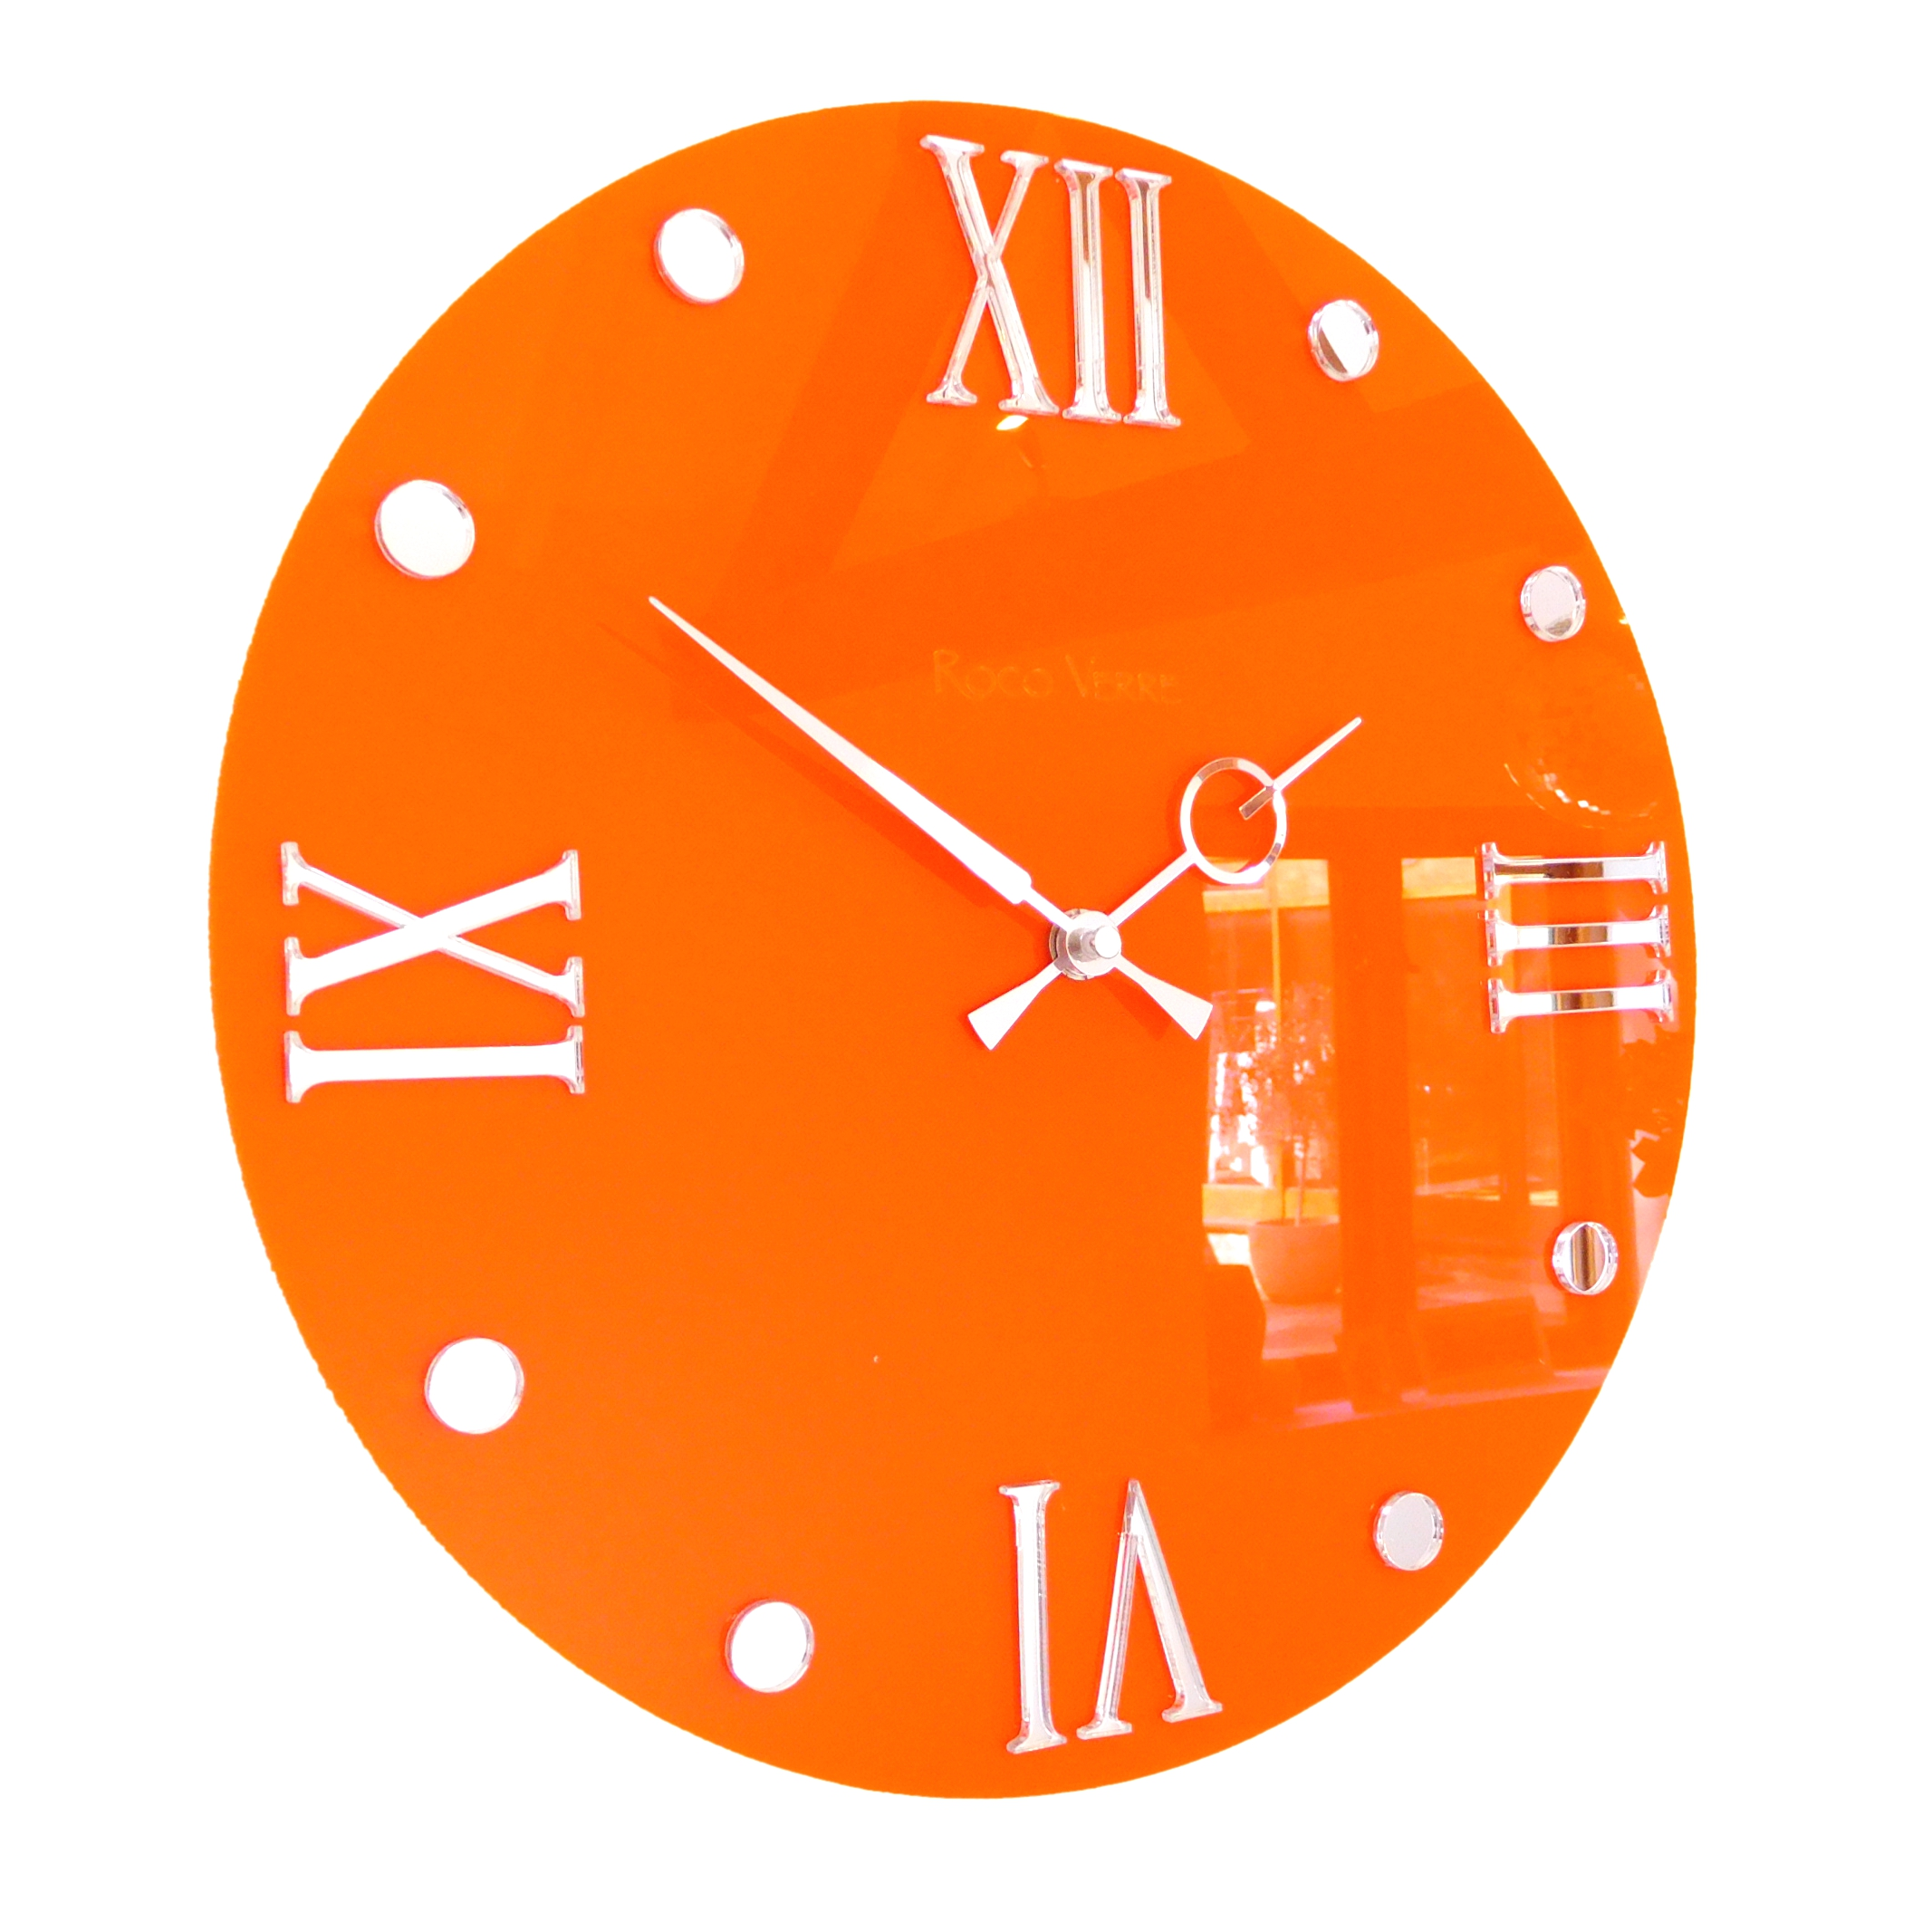 Roco Verre Round Retro Roman Gloss Wall Clock Gloss Orange 30cm Dia (12)